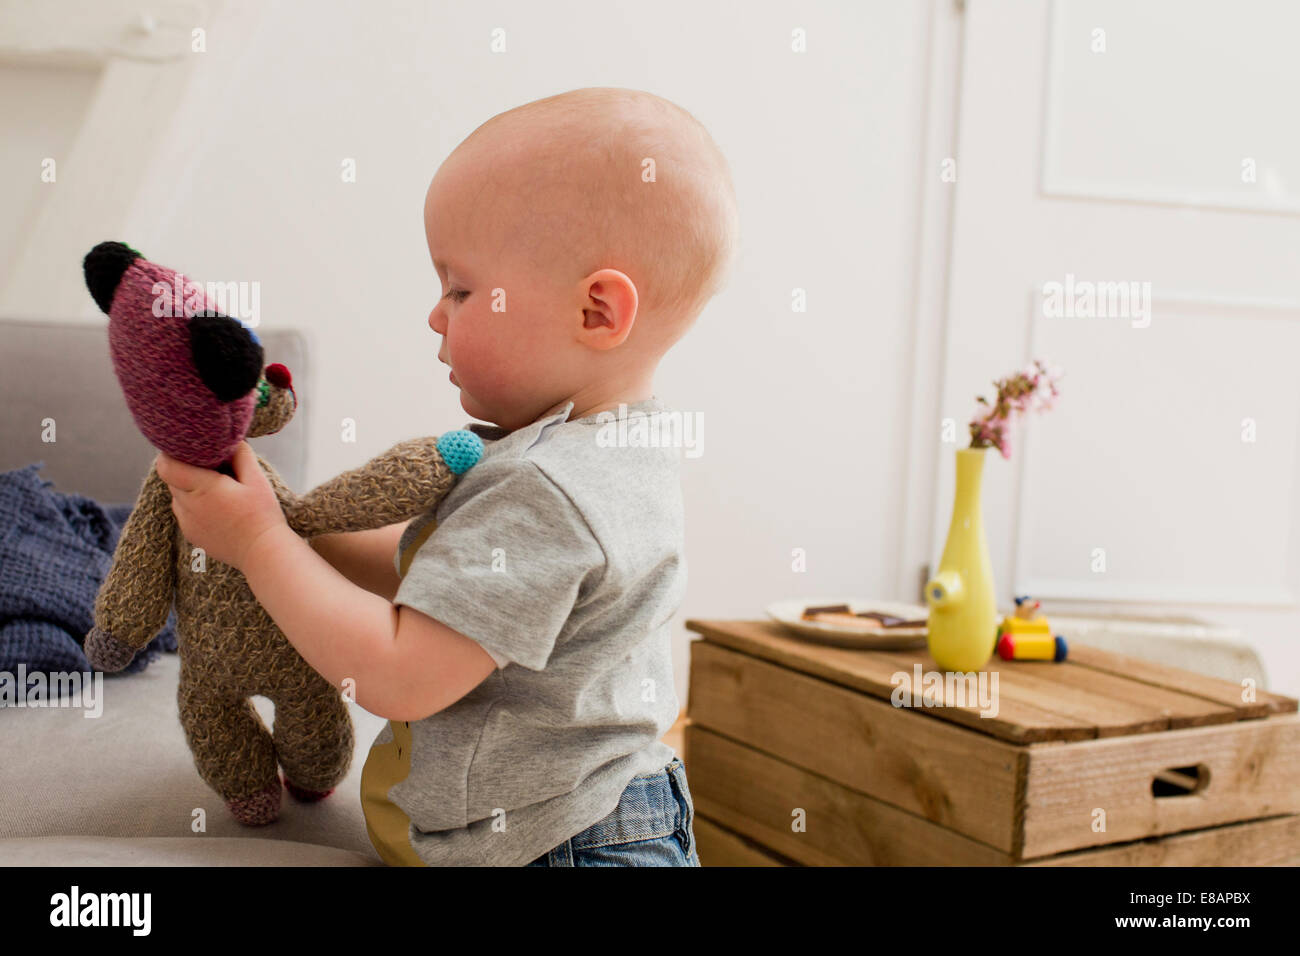 Baby girl pointing playing with teddy bear in sitting room - Stock Image